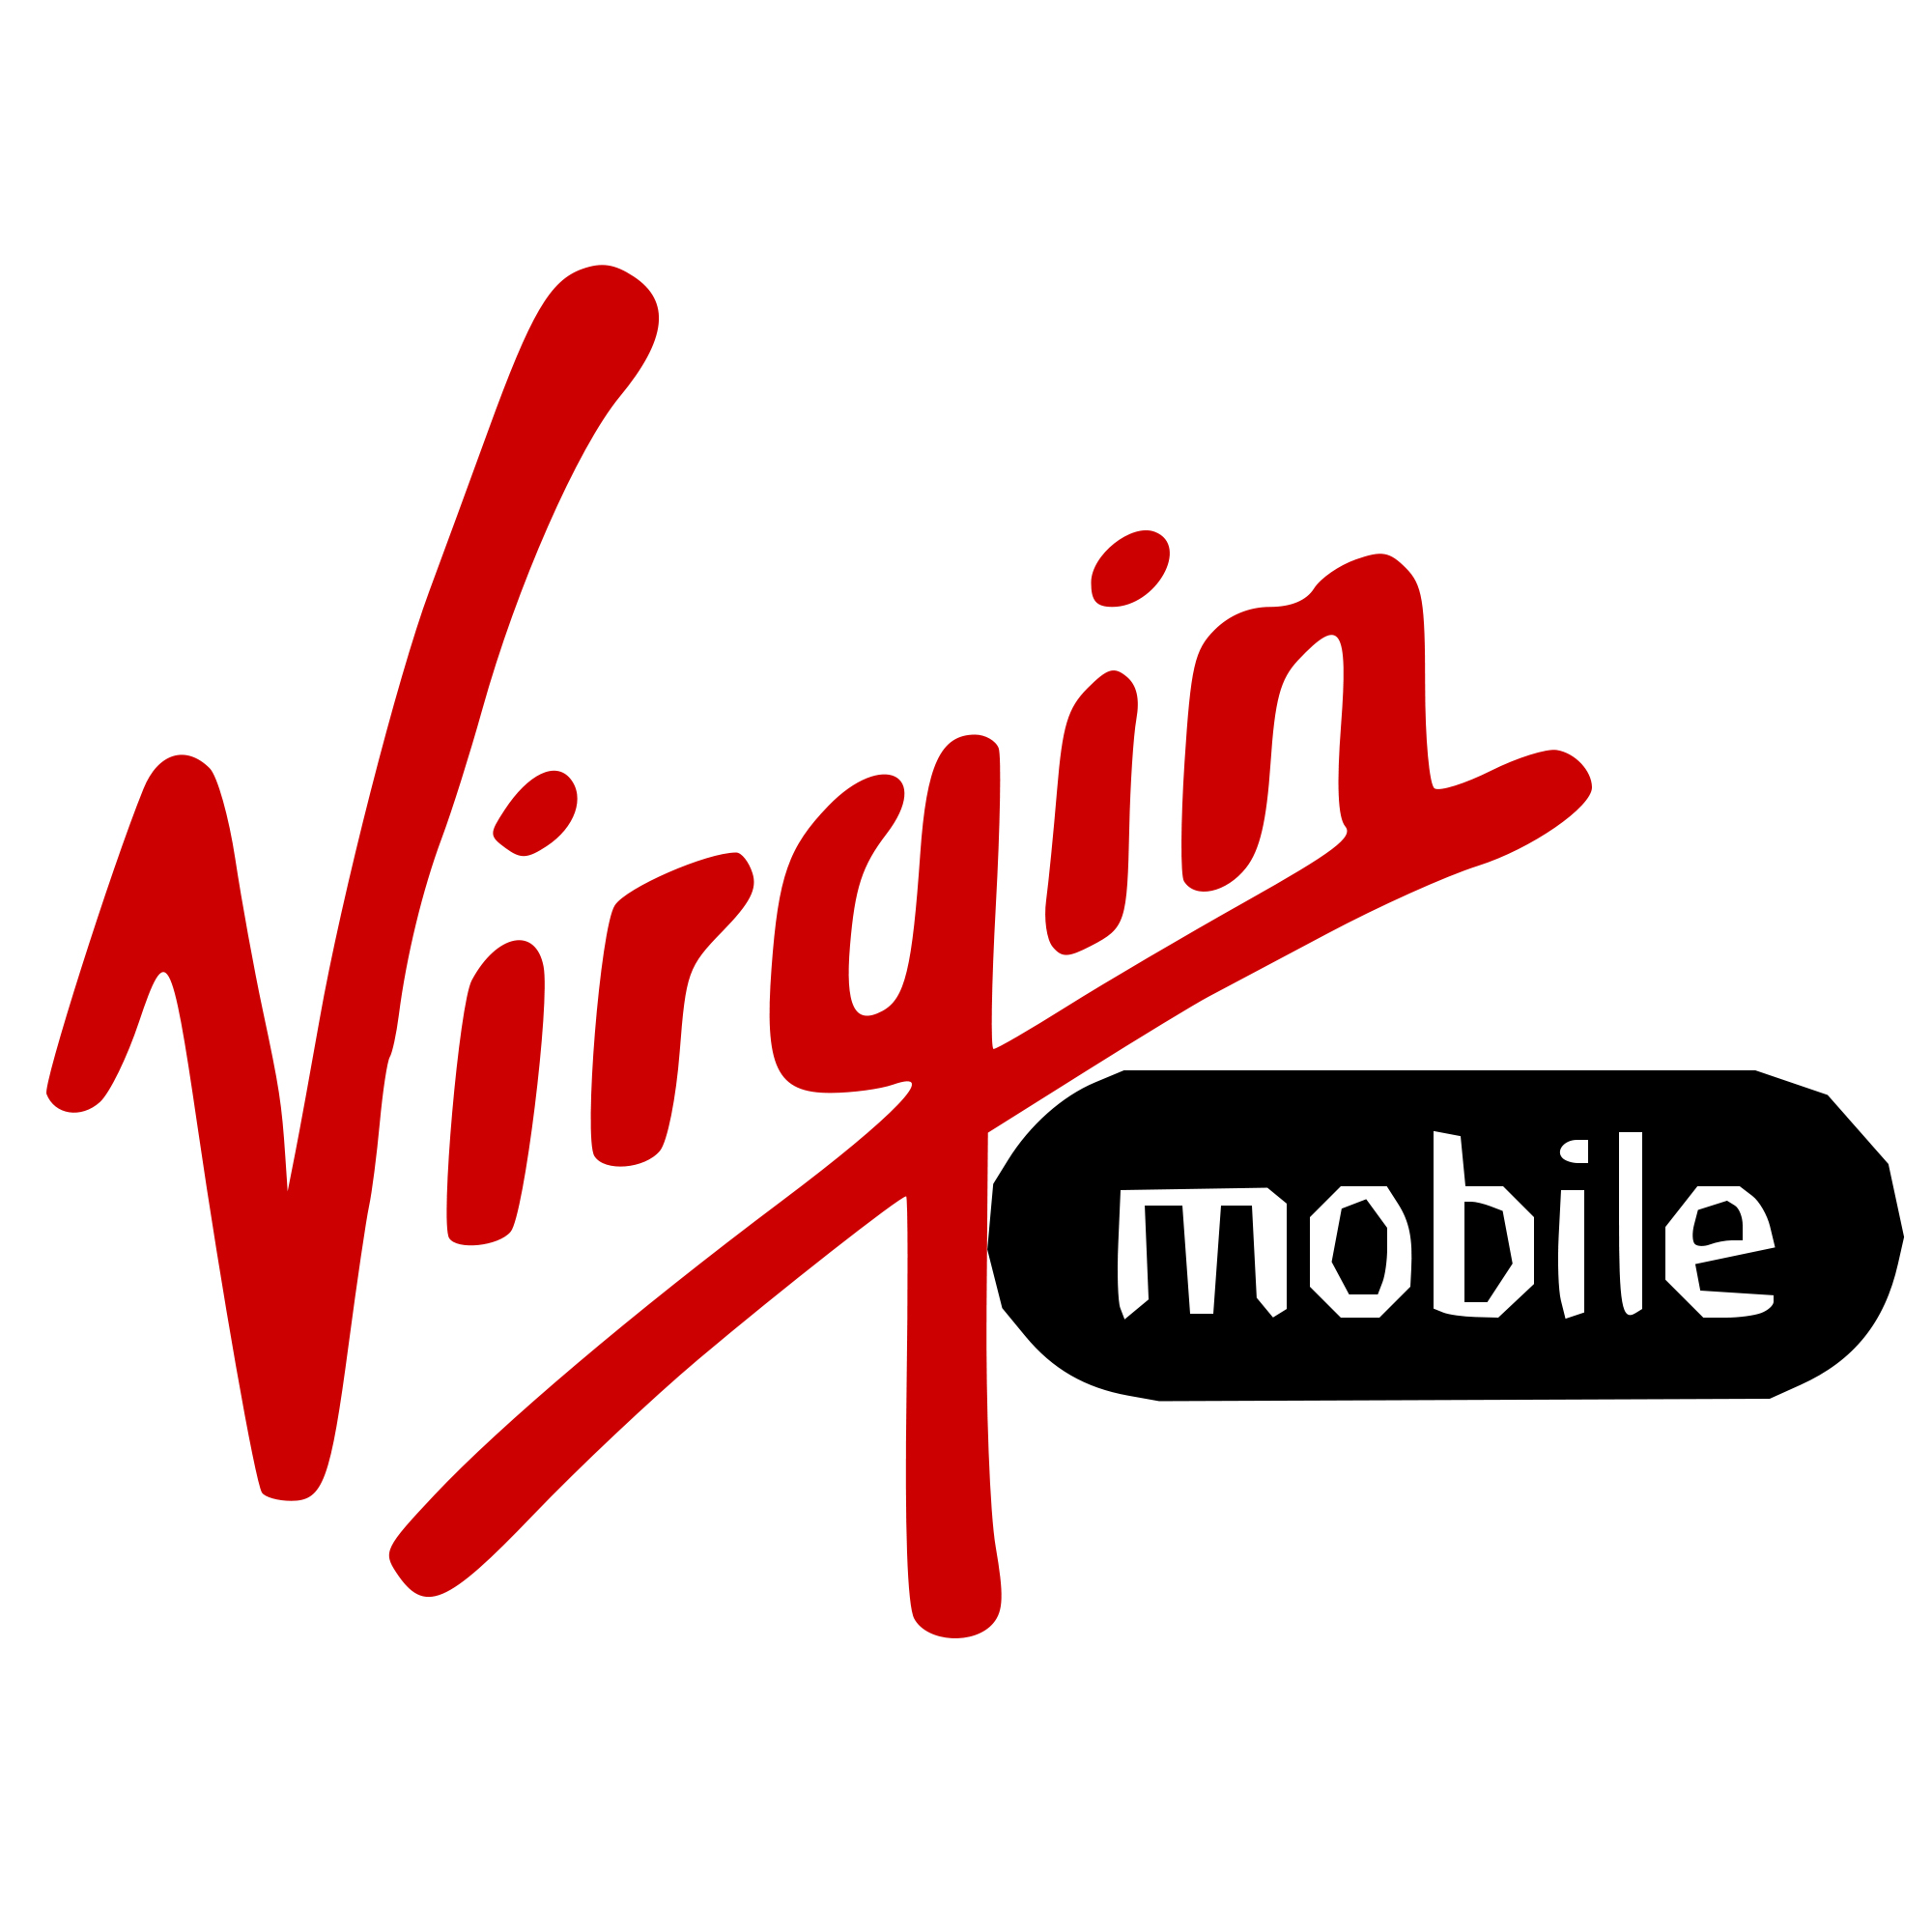 Virgin Mobile Samsung J7 Refine 32GB Prepaid Smartphone, Gold ,+ followers on Twitter.